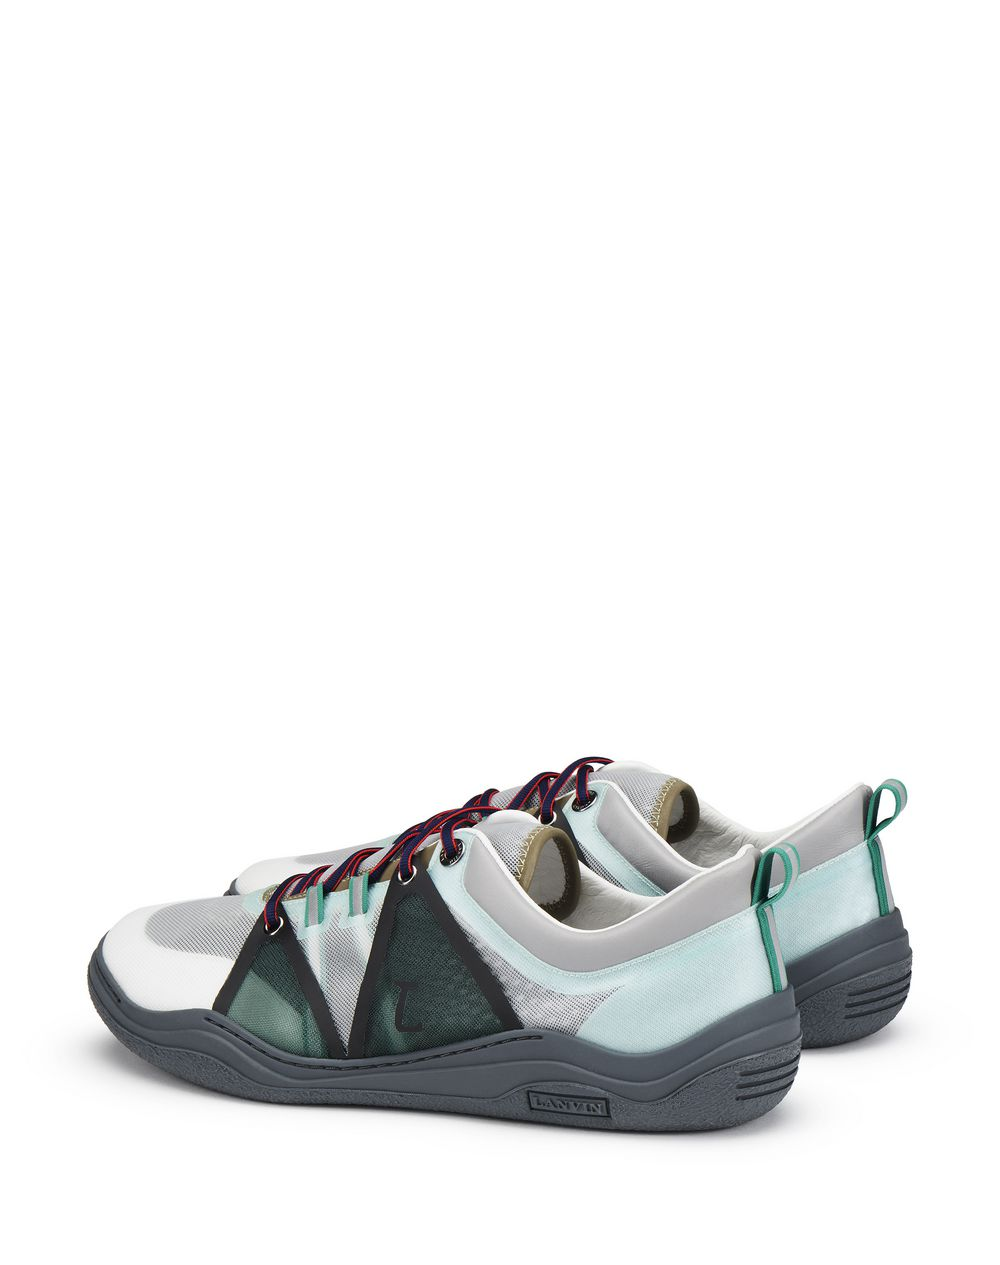 SEMI-TRANSPARENT BLACK AND GRAY DIVING SNEAKER - Lanvin